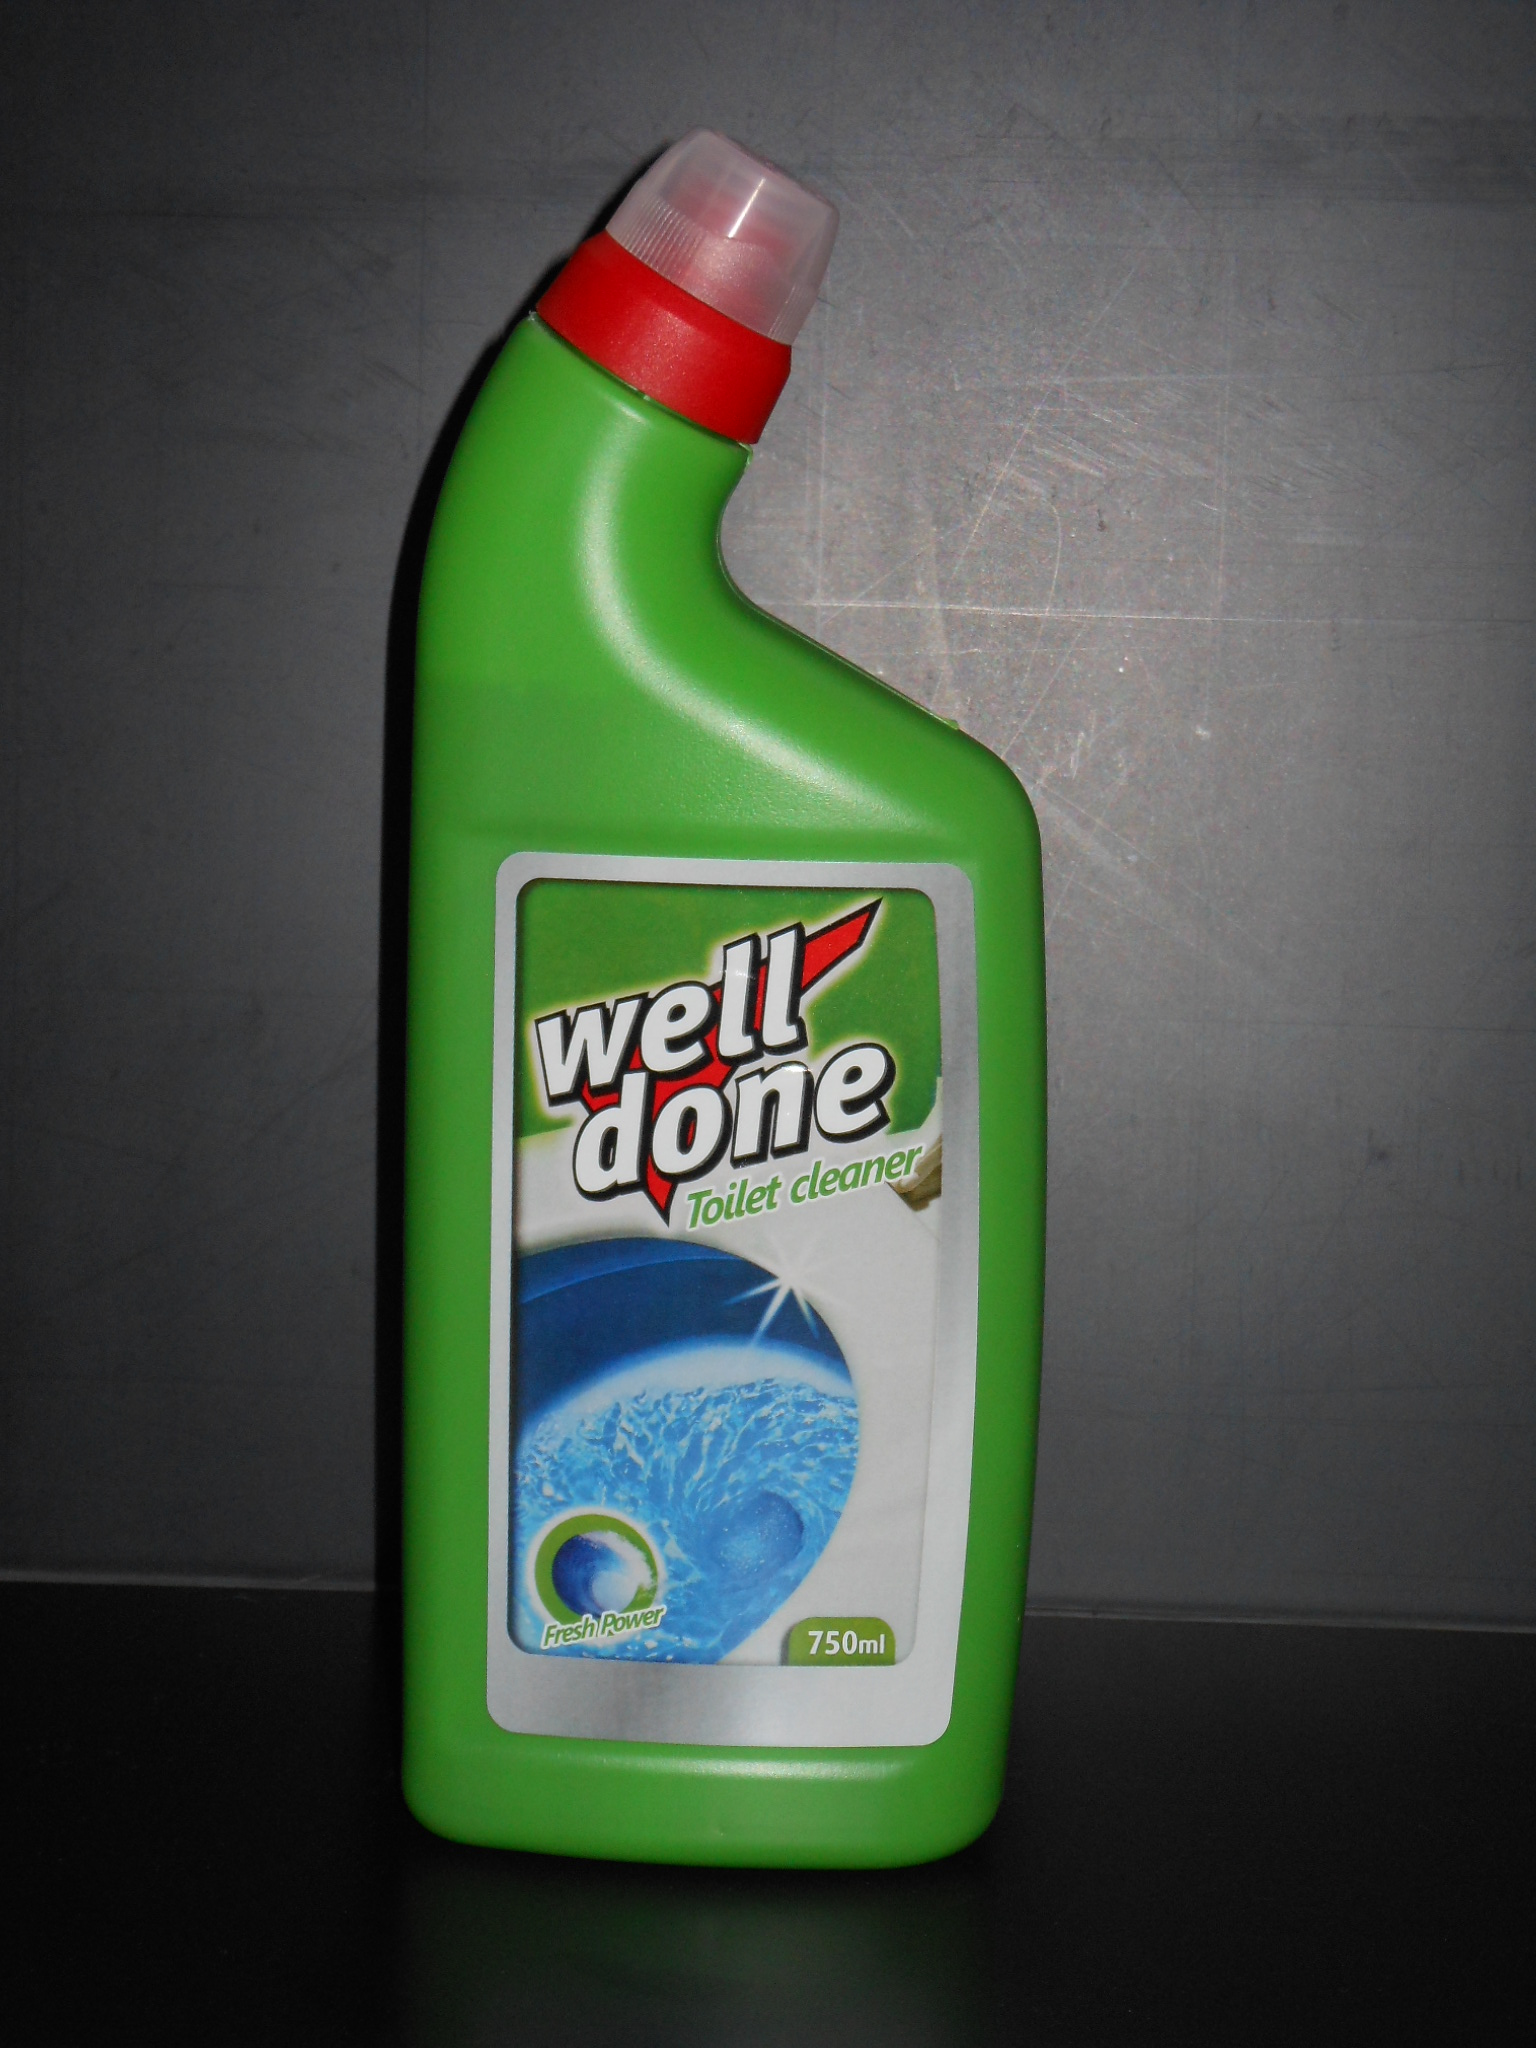 Well-done 750 ml - fresh power